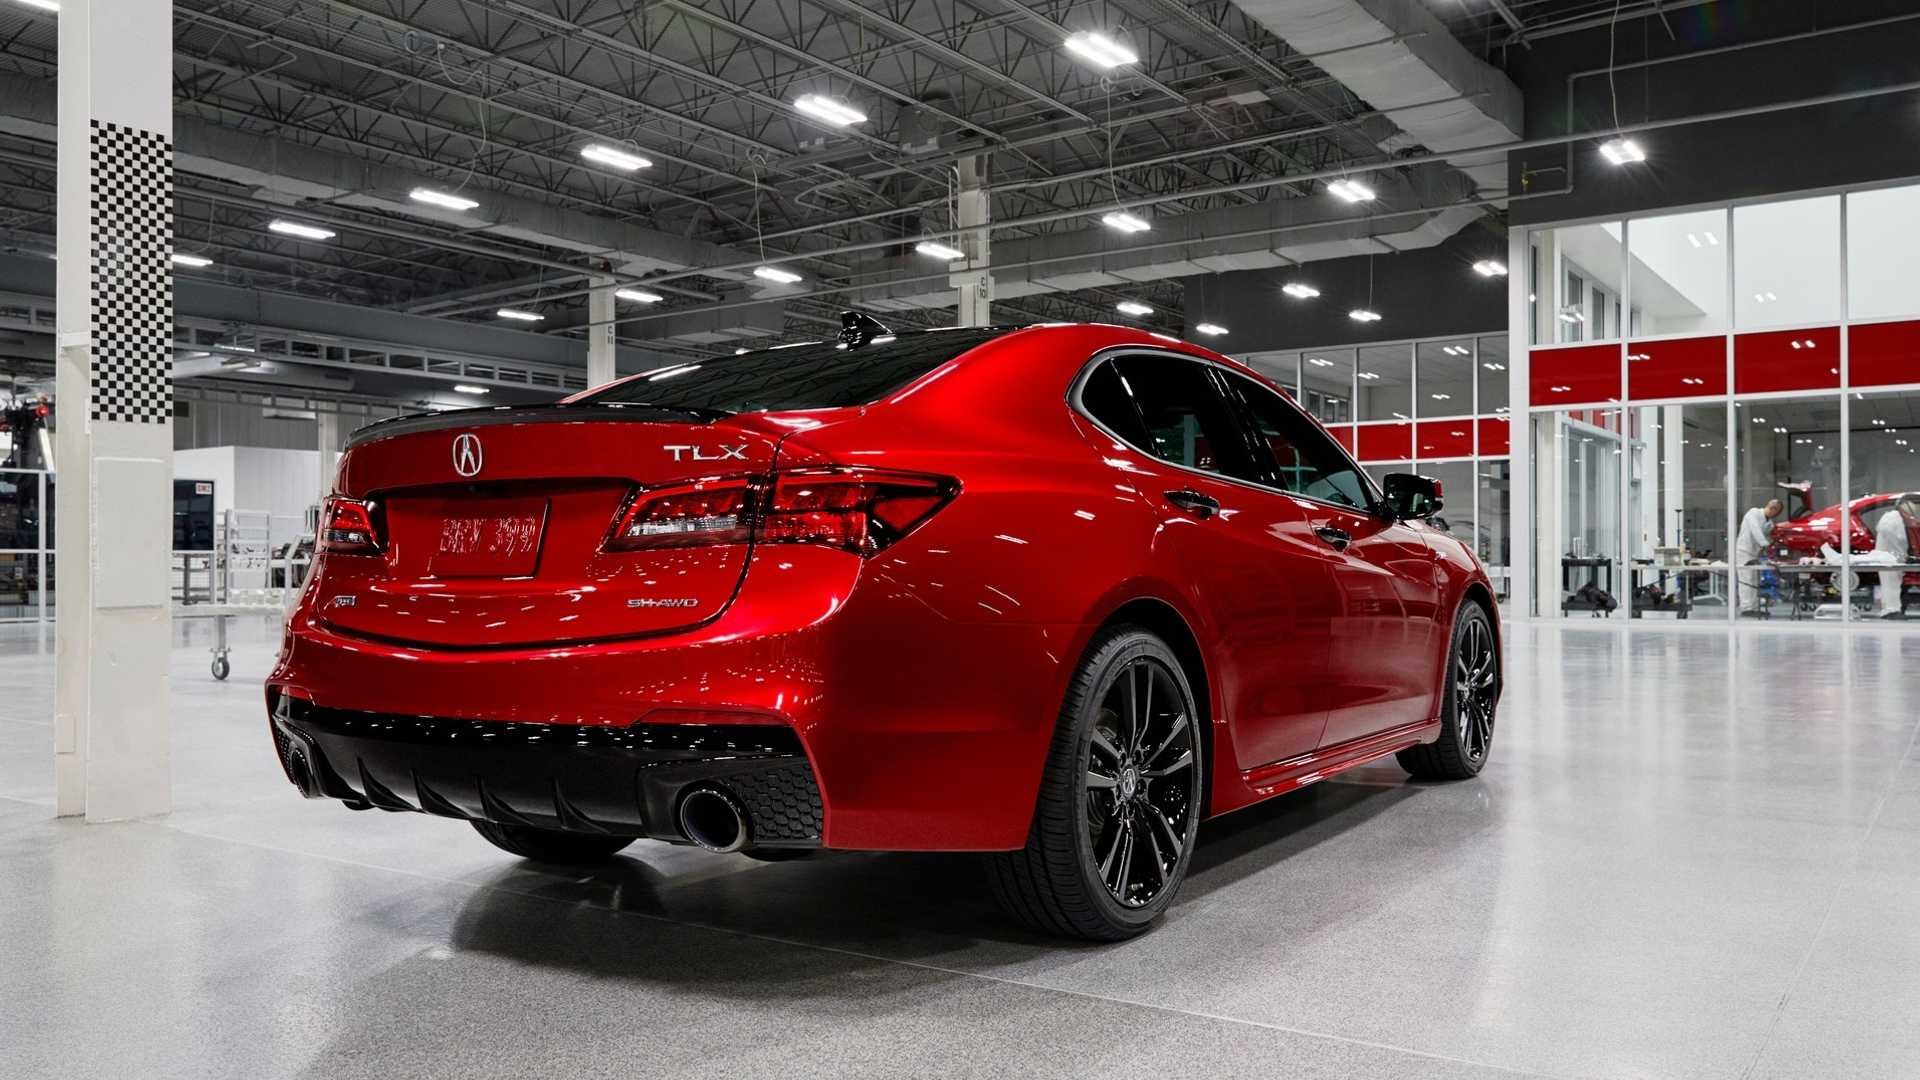 2020-acura-tlx-pmc-edition-2